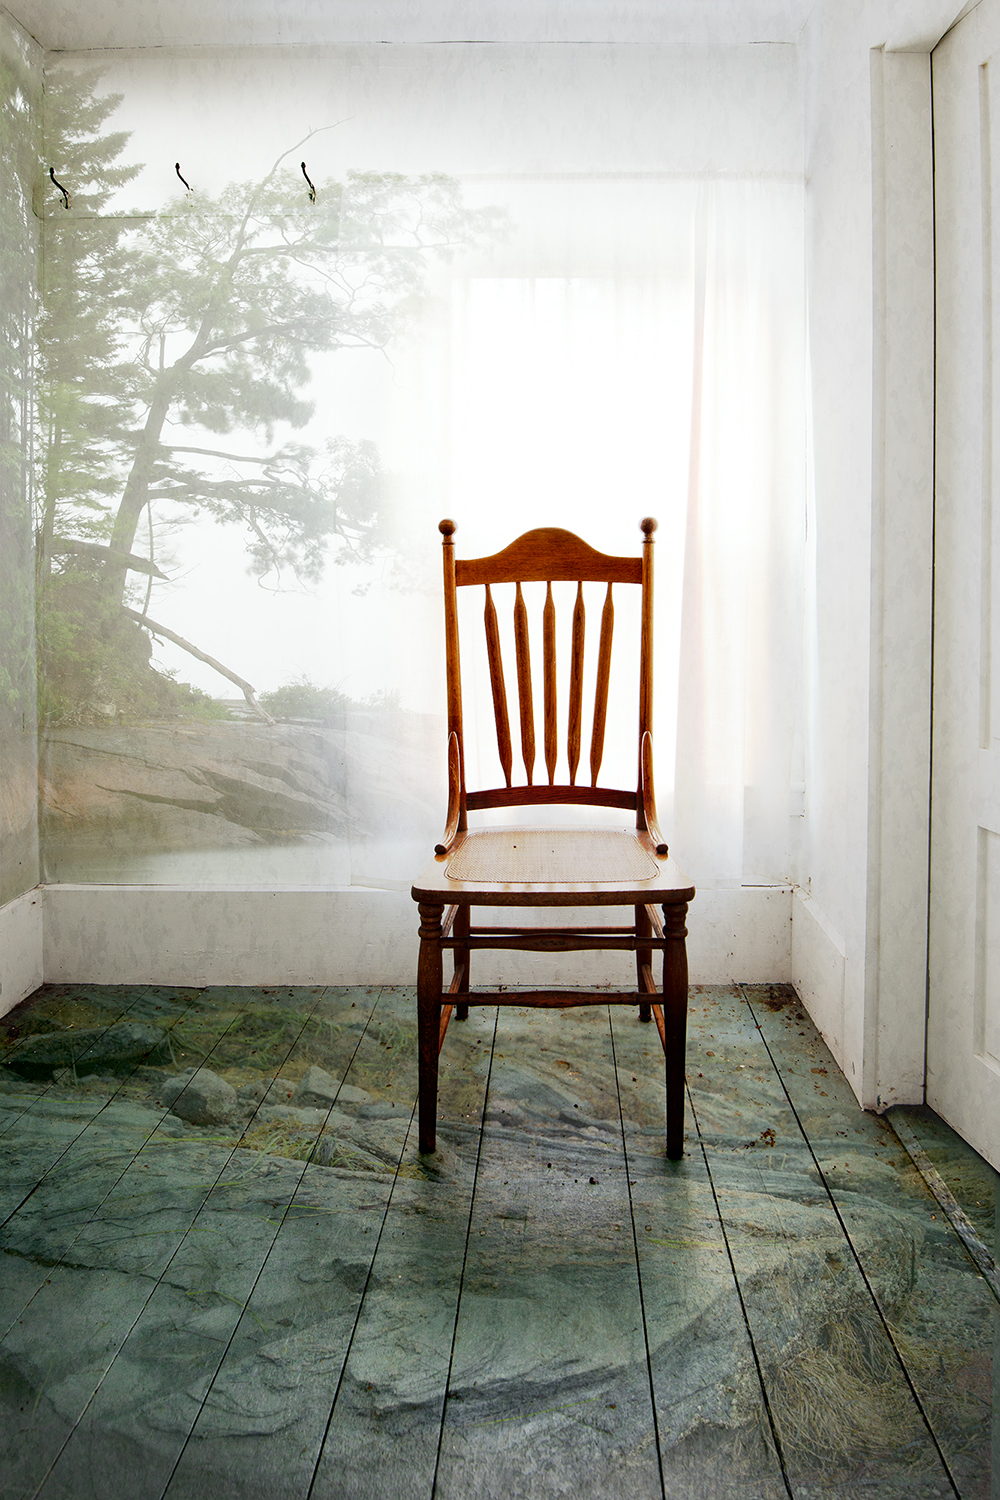 """Maine,"" part of a photographic triptych by Vicki McKenna"